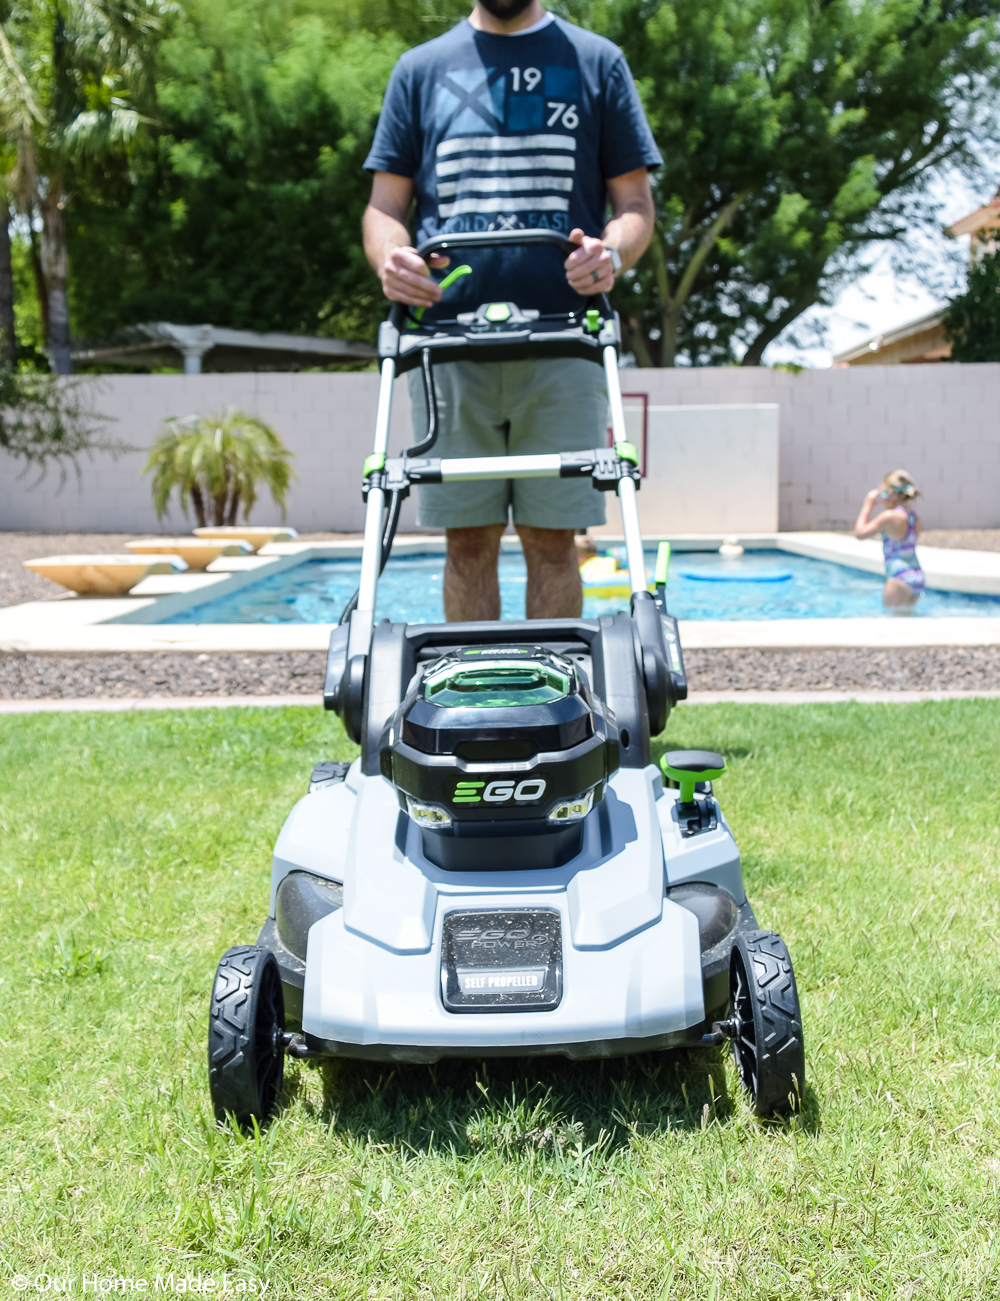 The EGO lawnmower helps us save time mowing our large backyard lawn